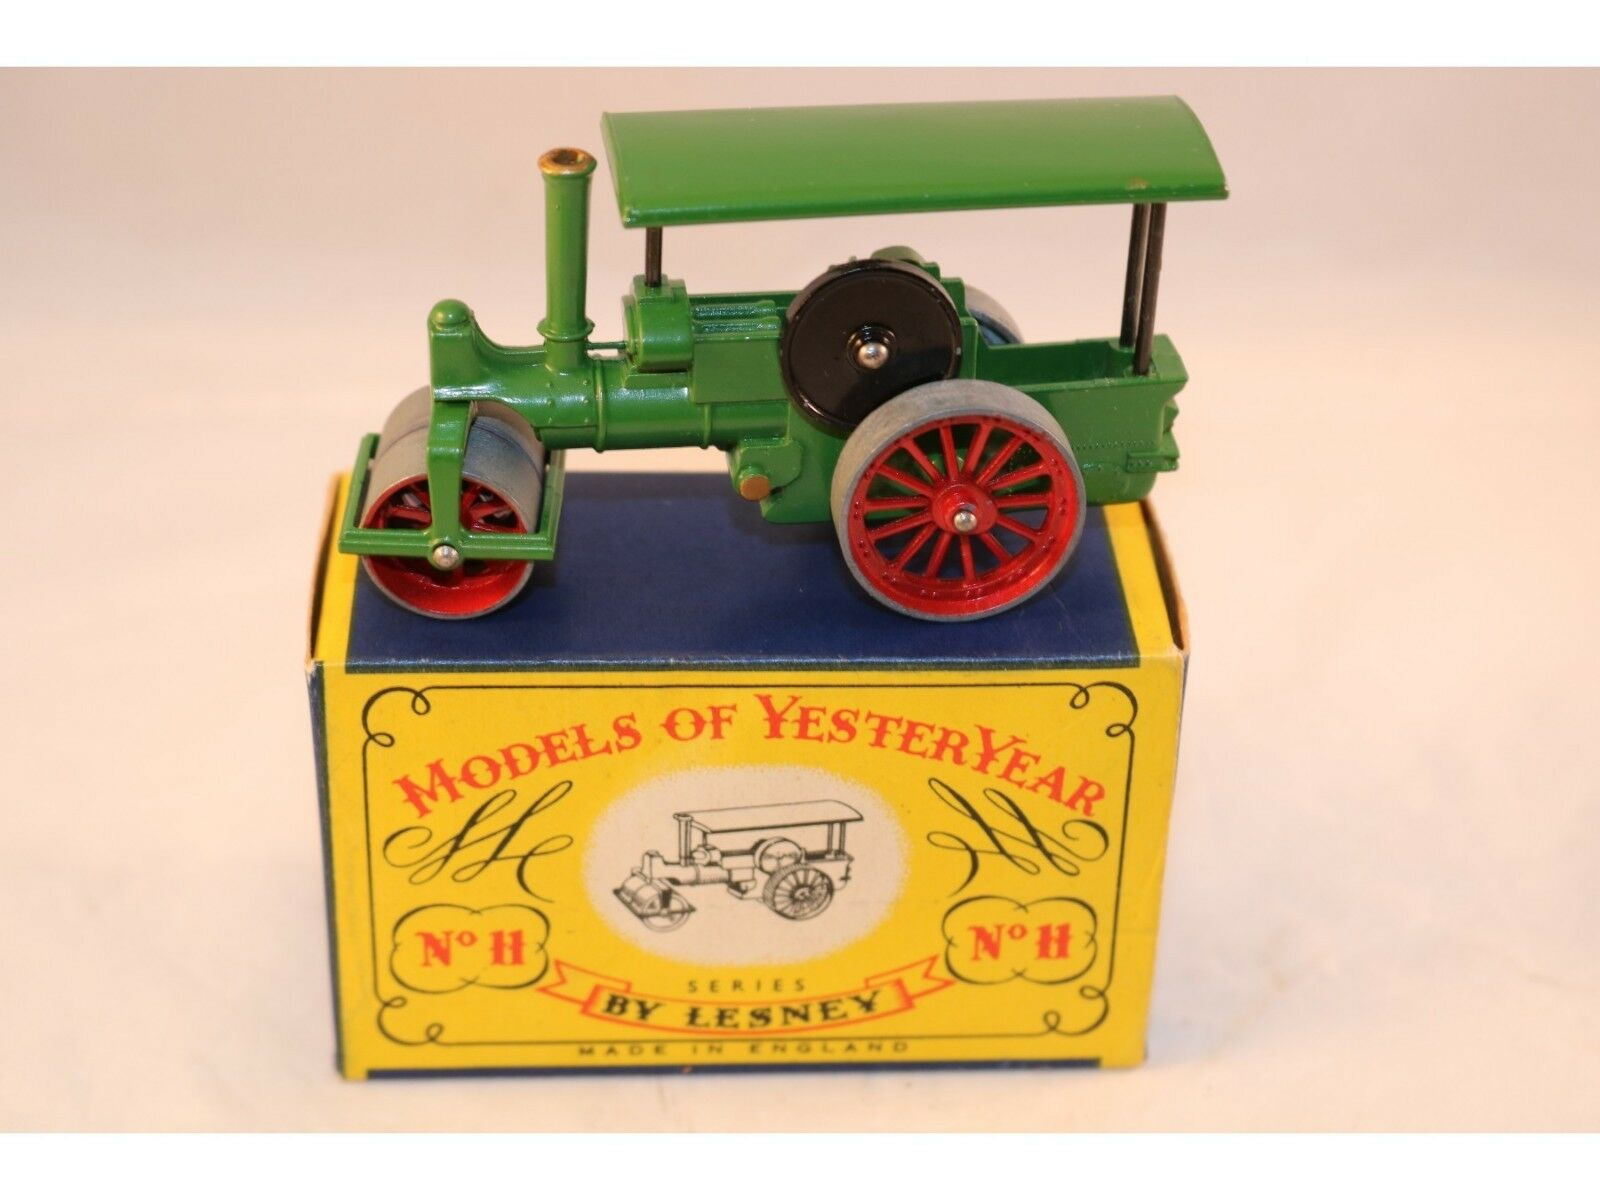 ventas en linea Matchbox Lesney models of YesterYear No 11 Aveling Aveling Aveling & Porter steam roller MIB  para mayoristas